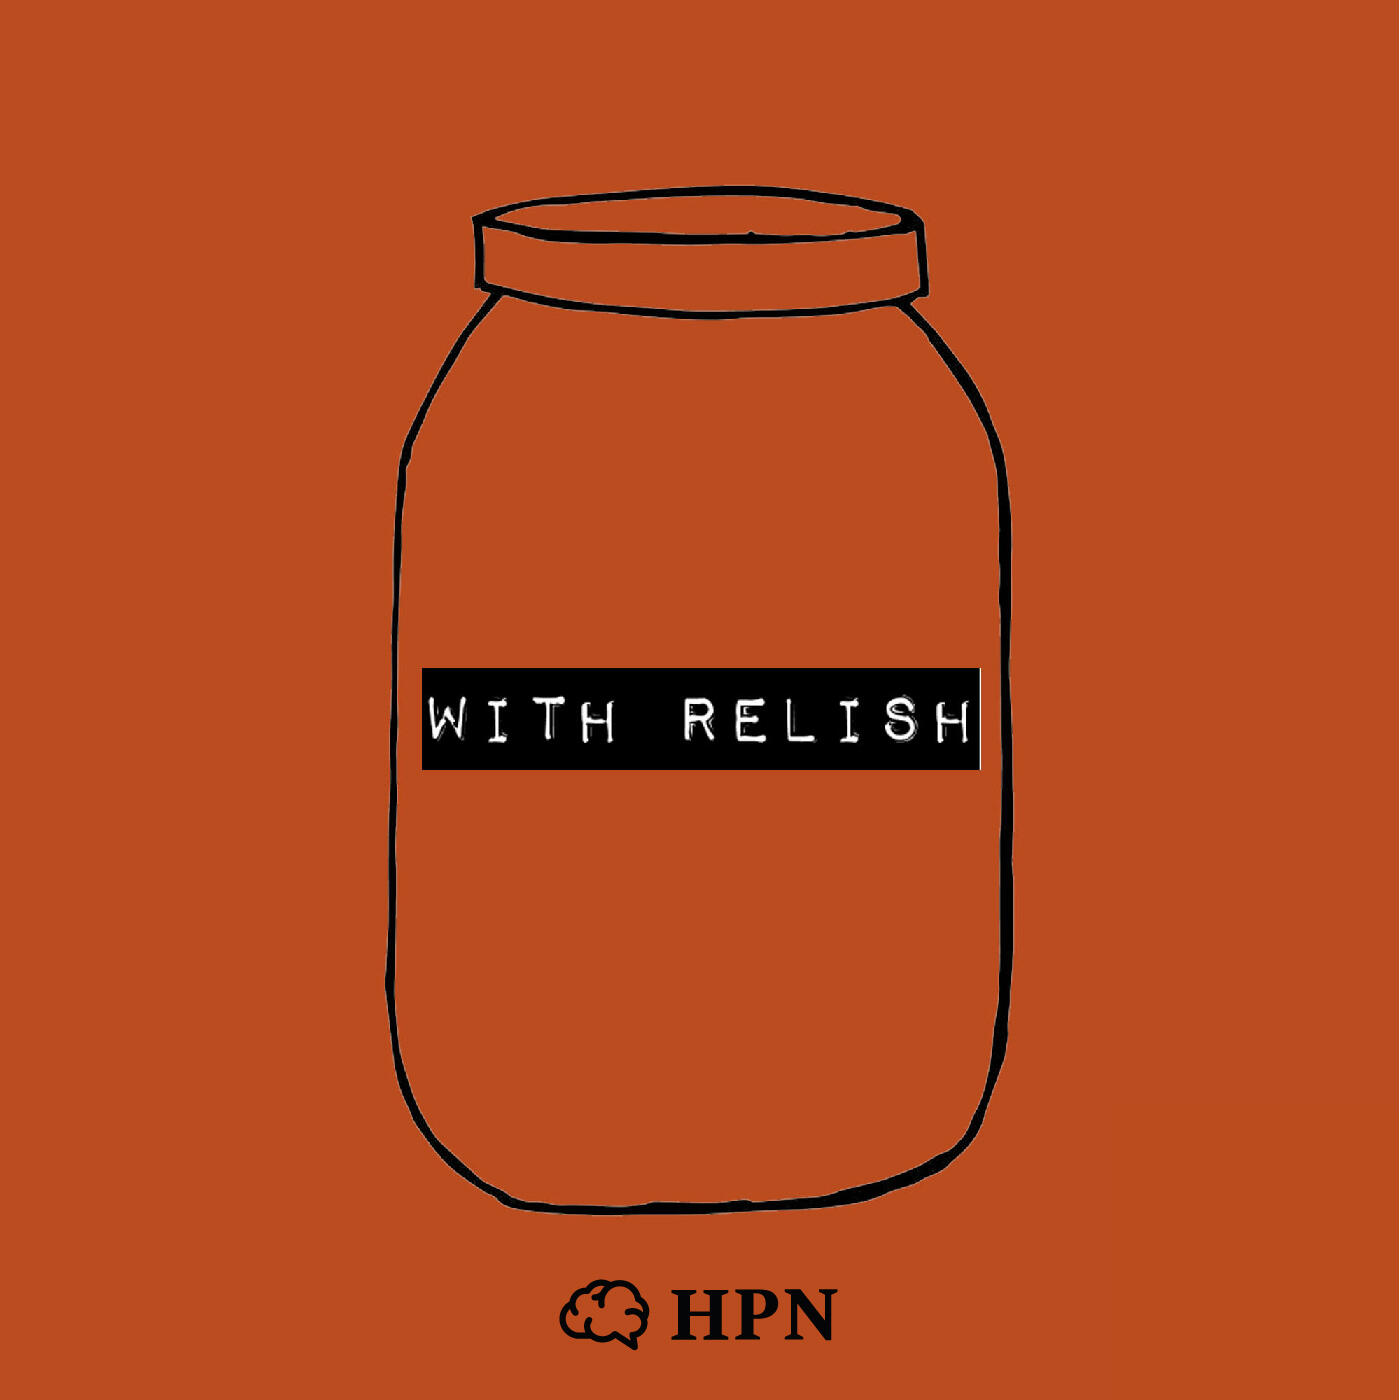 With Relish